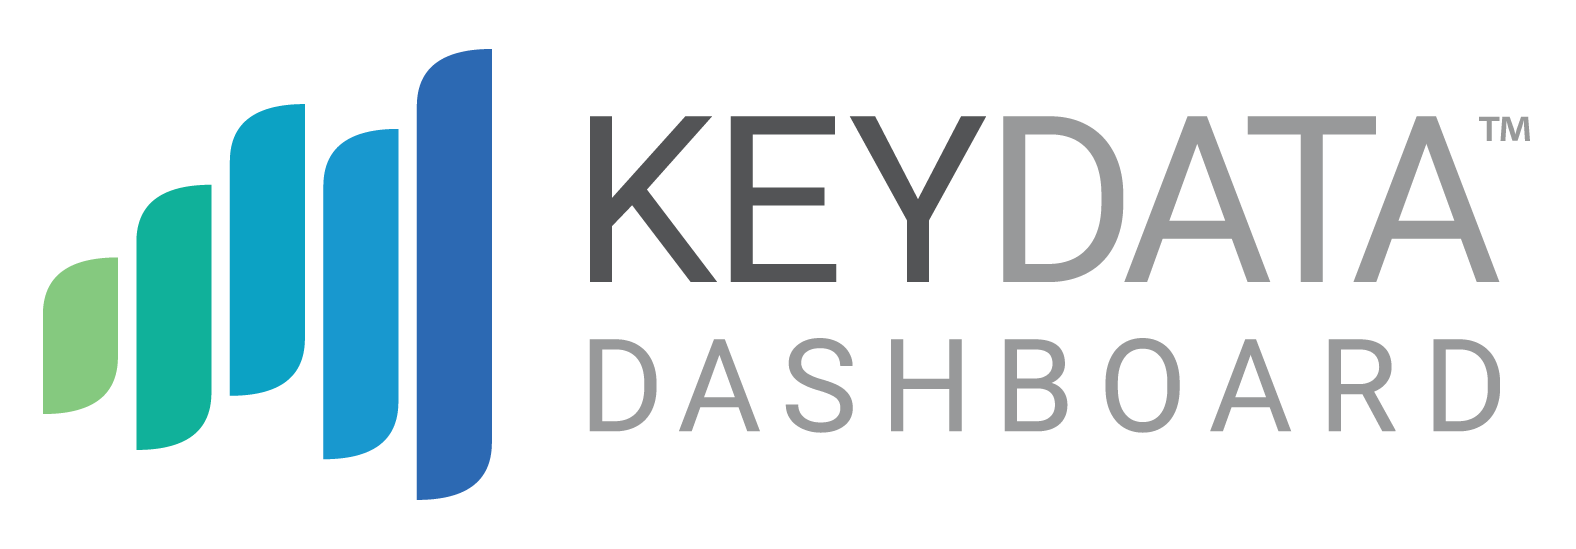 Key Data Dashboard